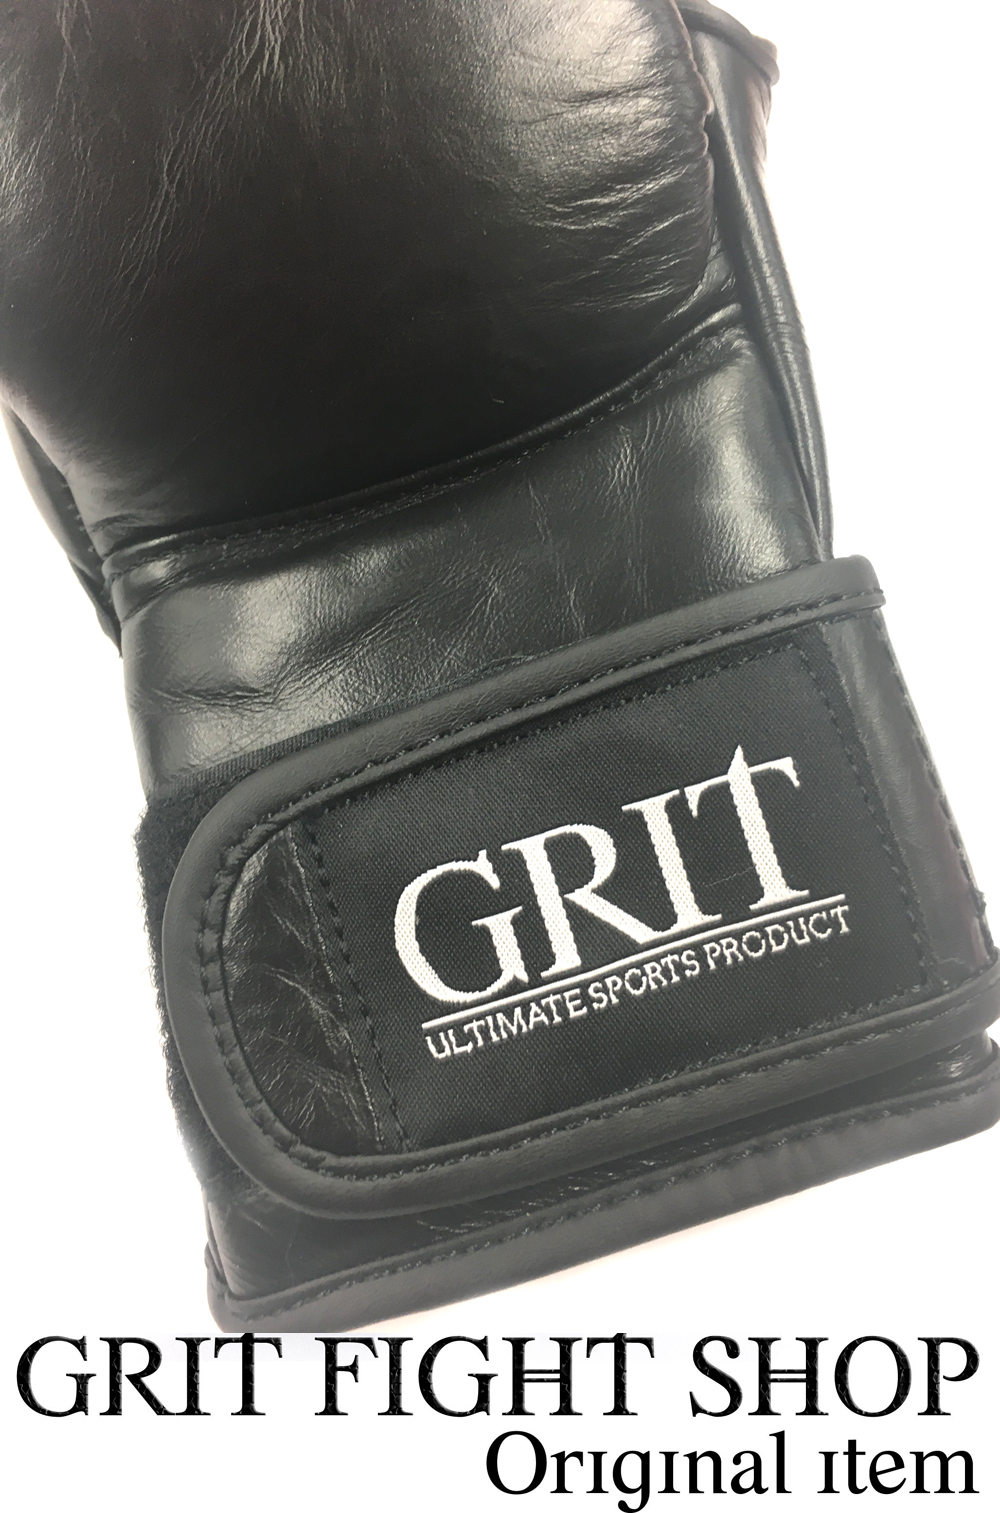 GRIT SOFT CUSHION SAFETY MMA GLOVE※YouTuberファミリータイム愛用モデル